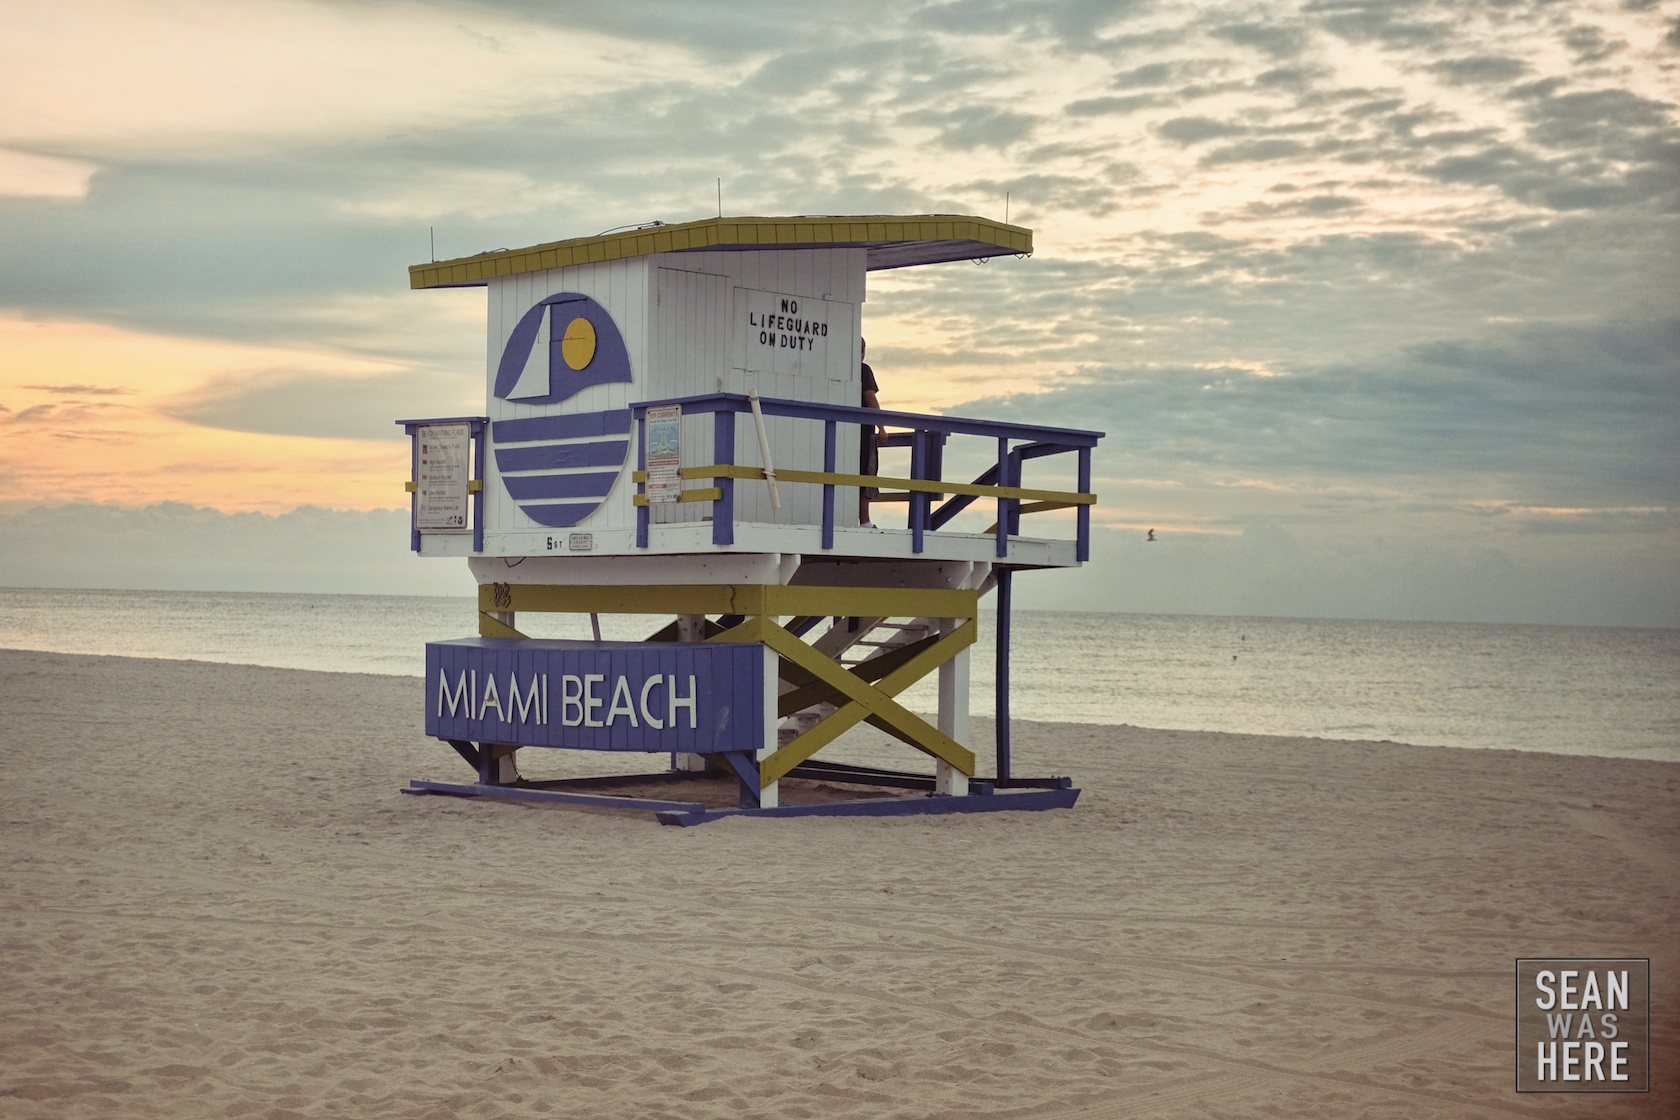 Miami Beach Jetty 5thStreet Lifeguard Stand